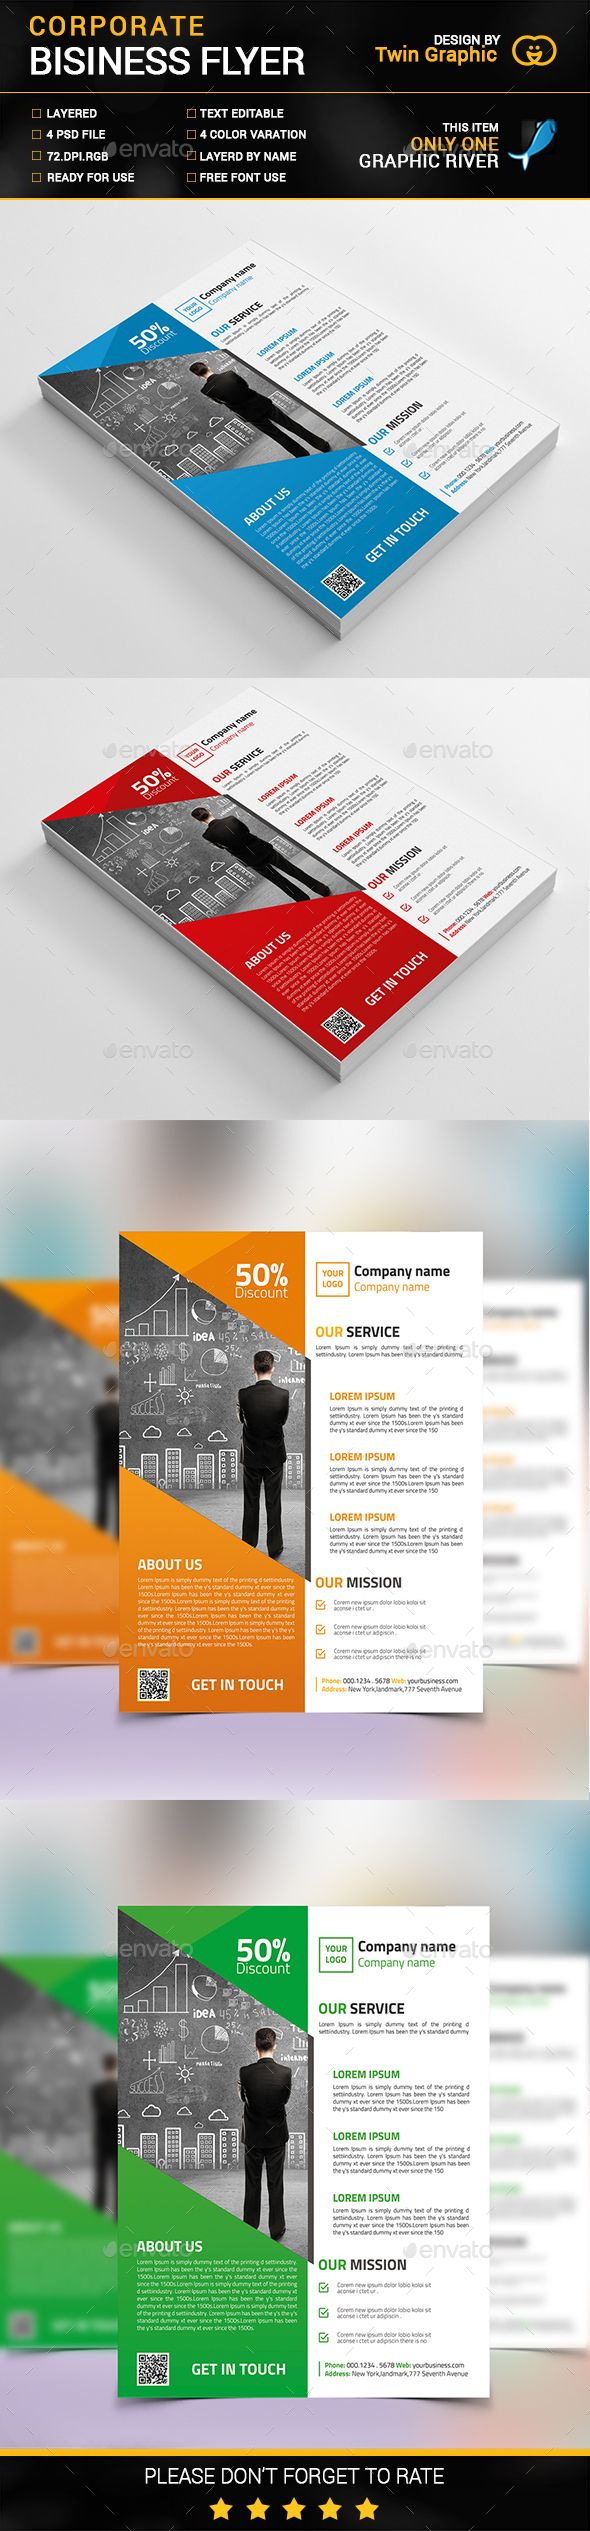 1000 ideas about business flyers business flyer corporate business flyer design template psd here graphicriver